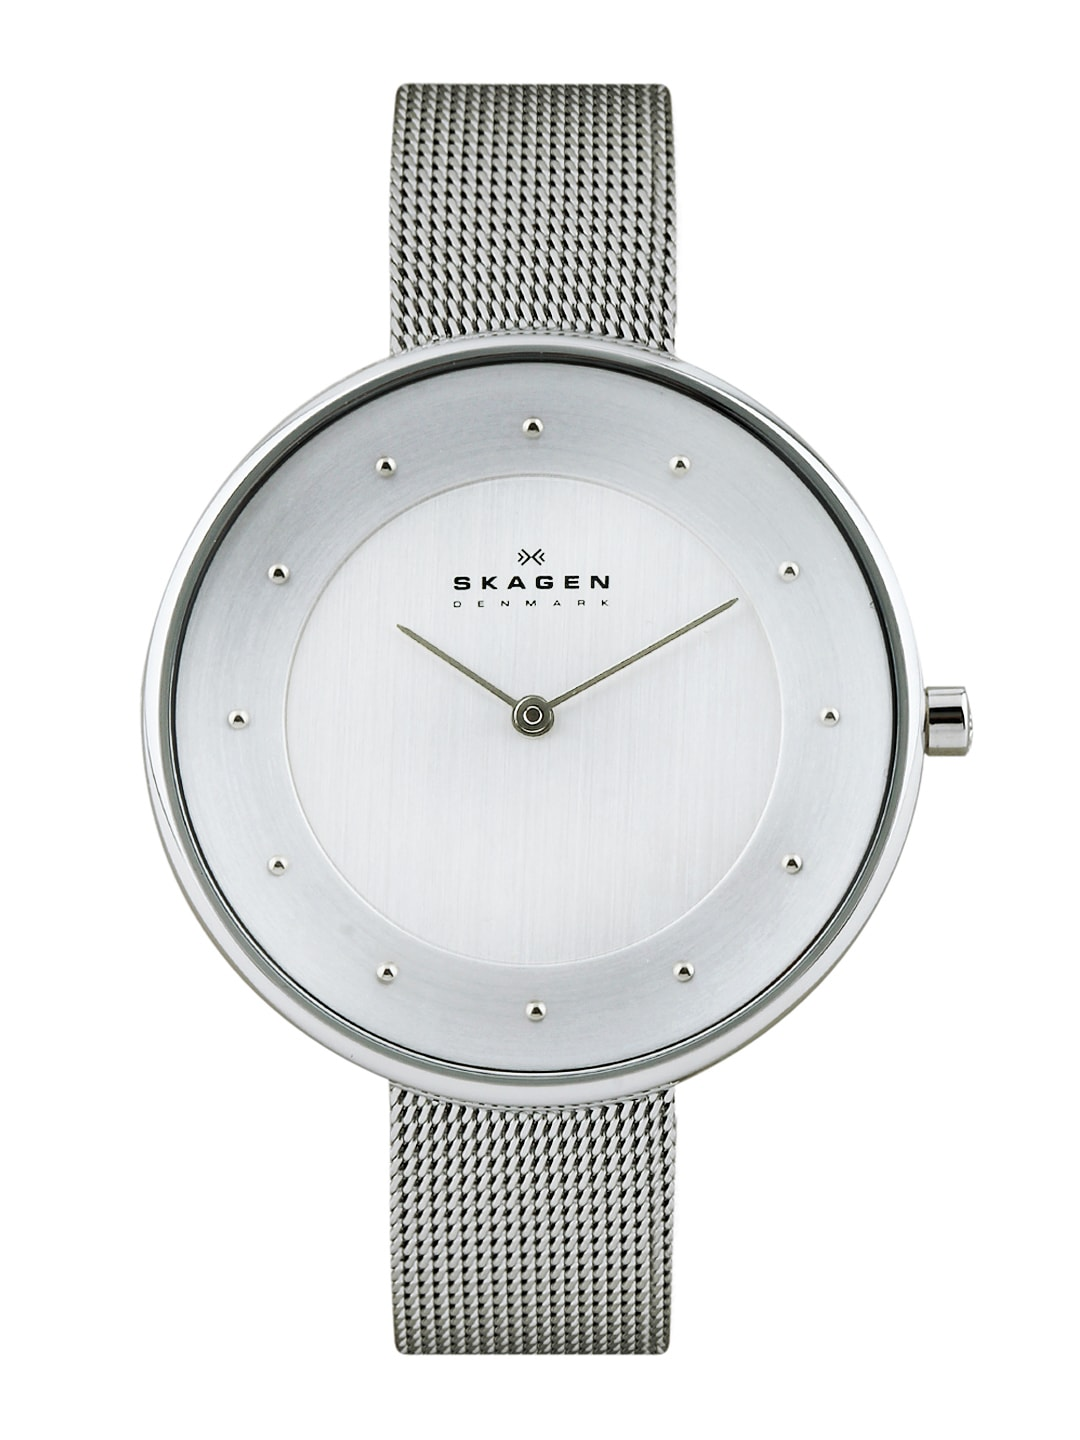 Skagen Denmark Women Silver-Toned Dial Watch SKW2140